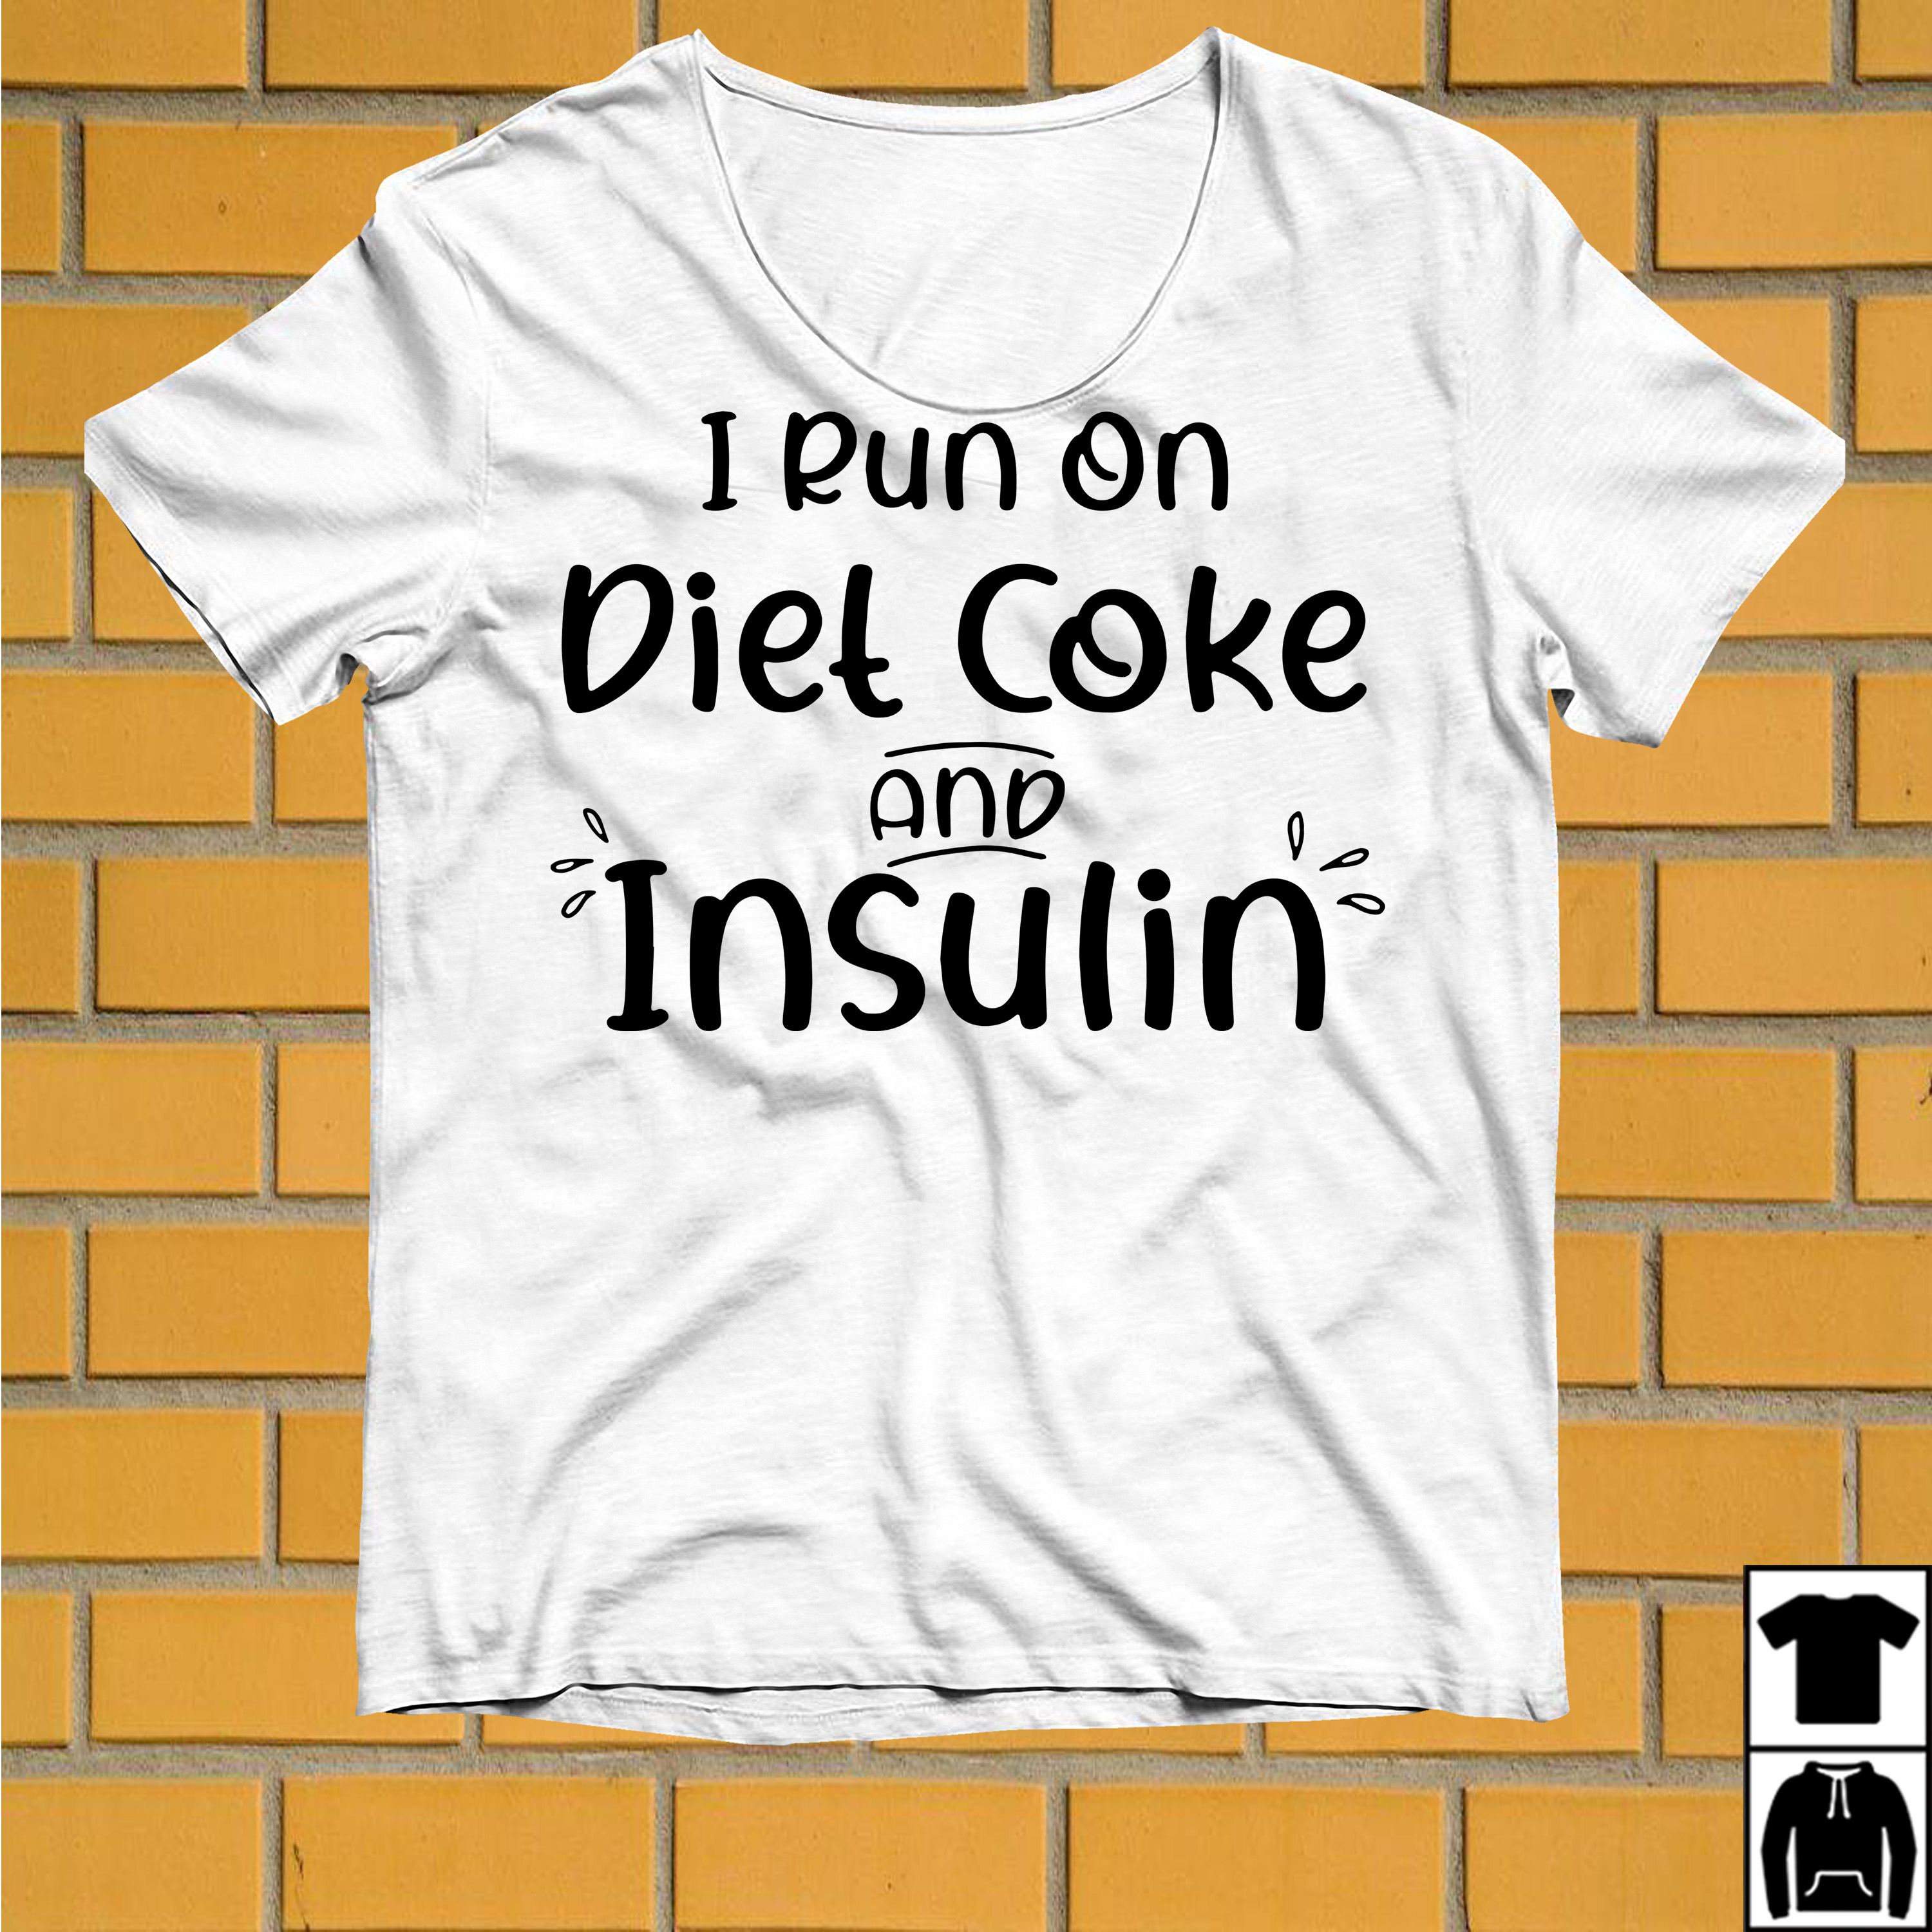 I run on Diet Coke and Insulin shirt